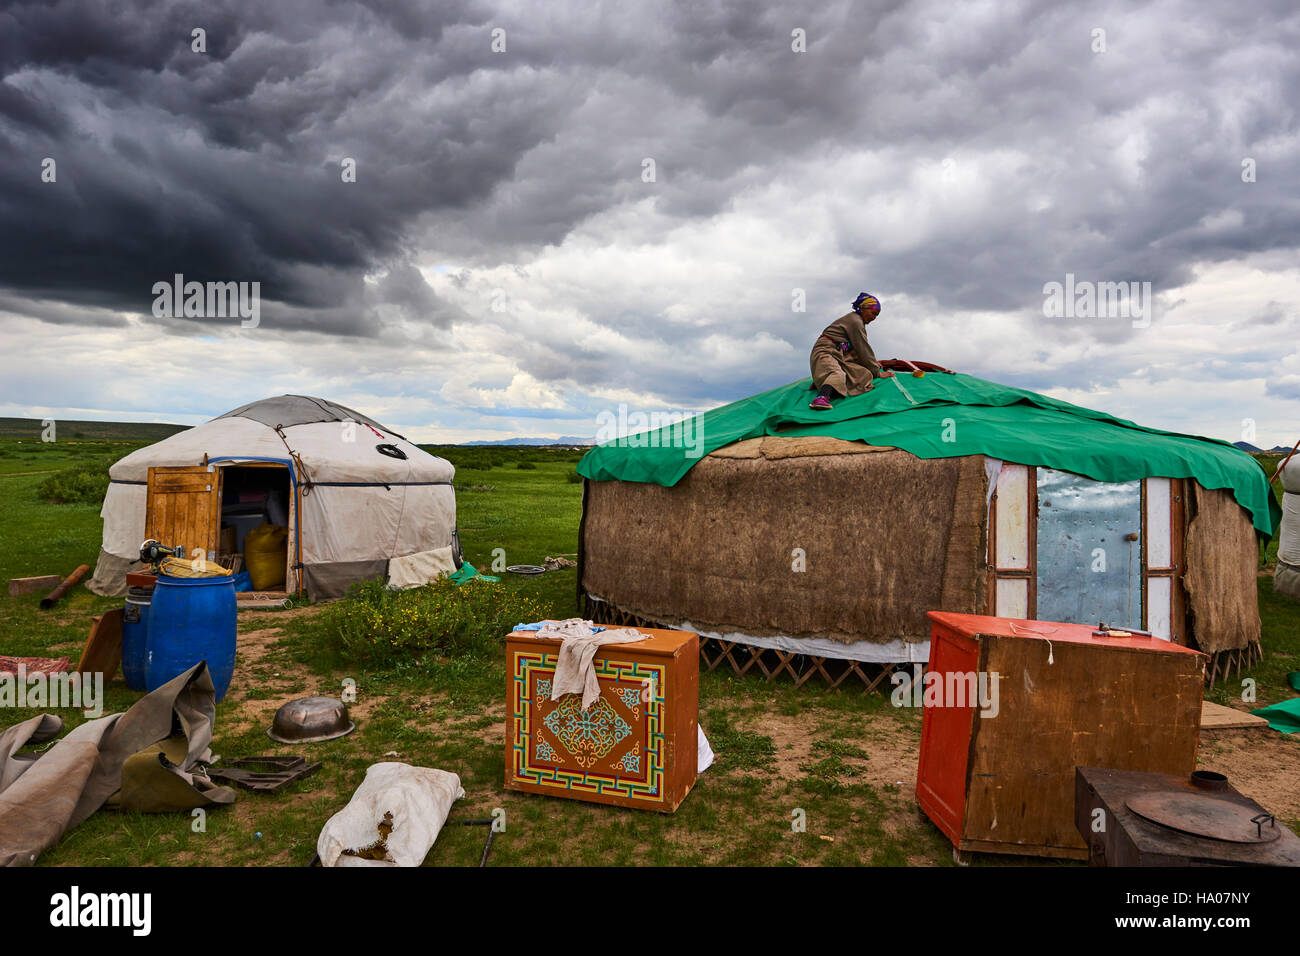 Mongolia, Ovorkhangai province, Orkhon valley, Nomad camp migration, construction of yurt - Stock Image